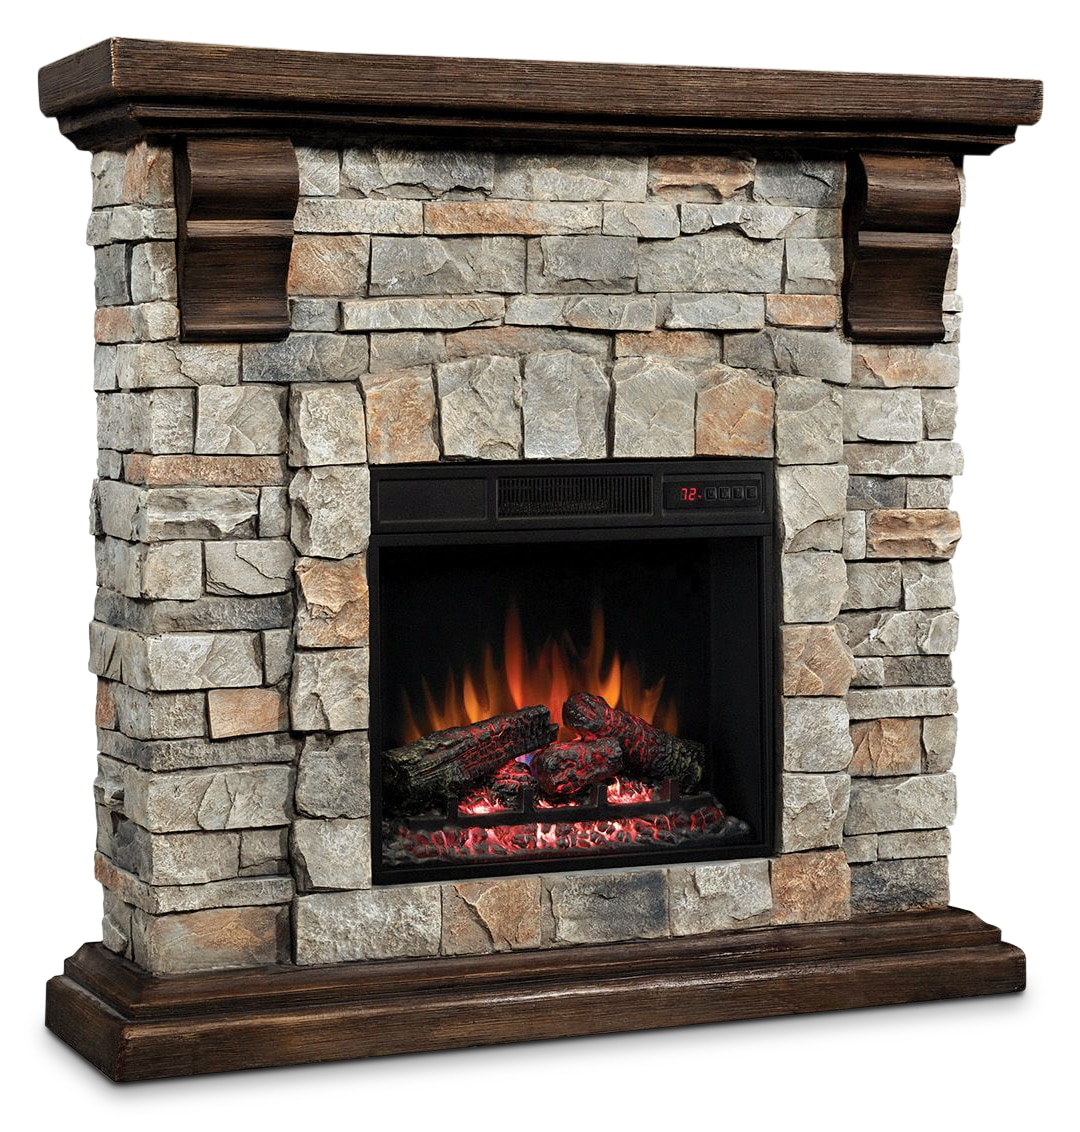 Pioneer Fireplace - Dark Pine with Faux Stone